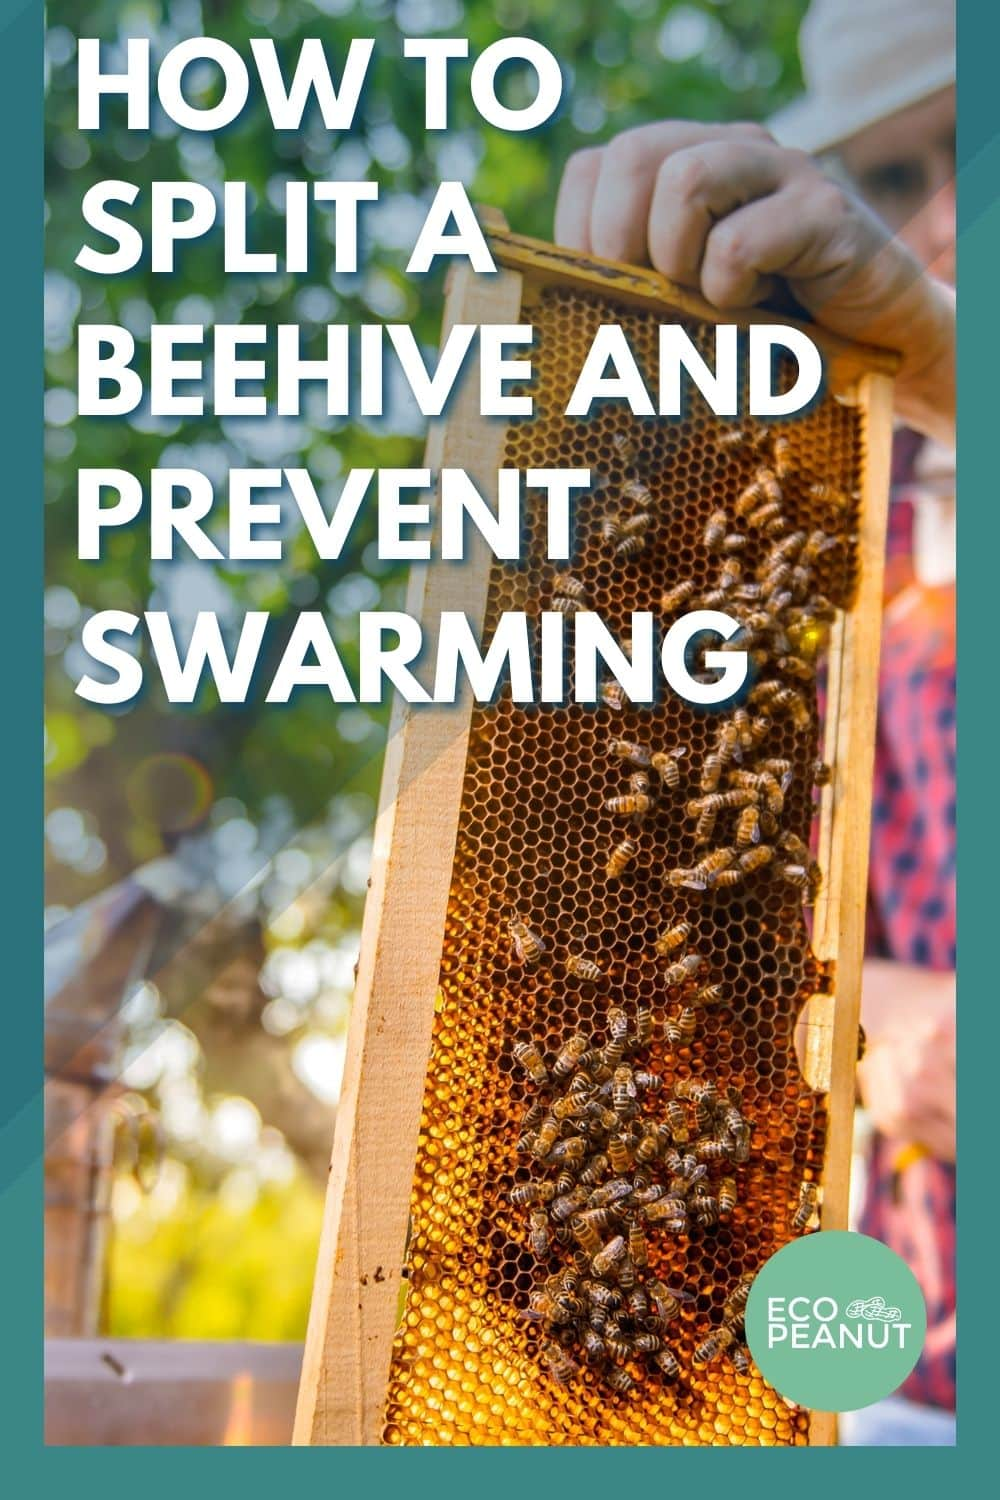 how to spit a beehive